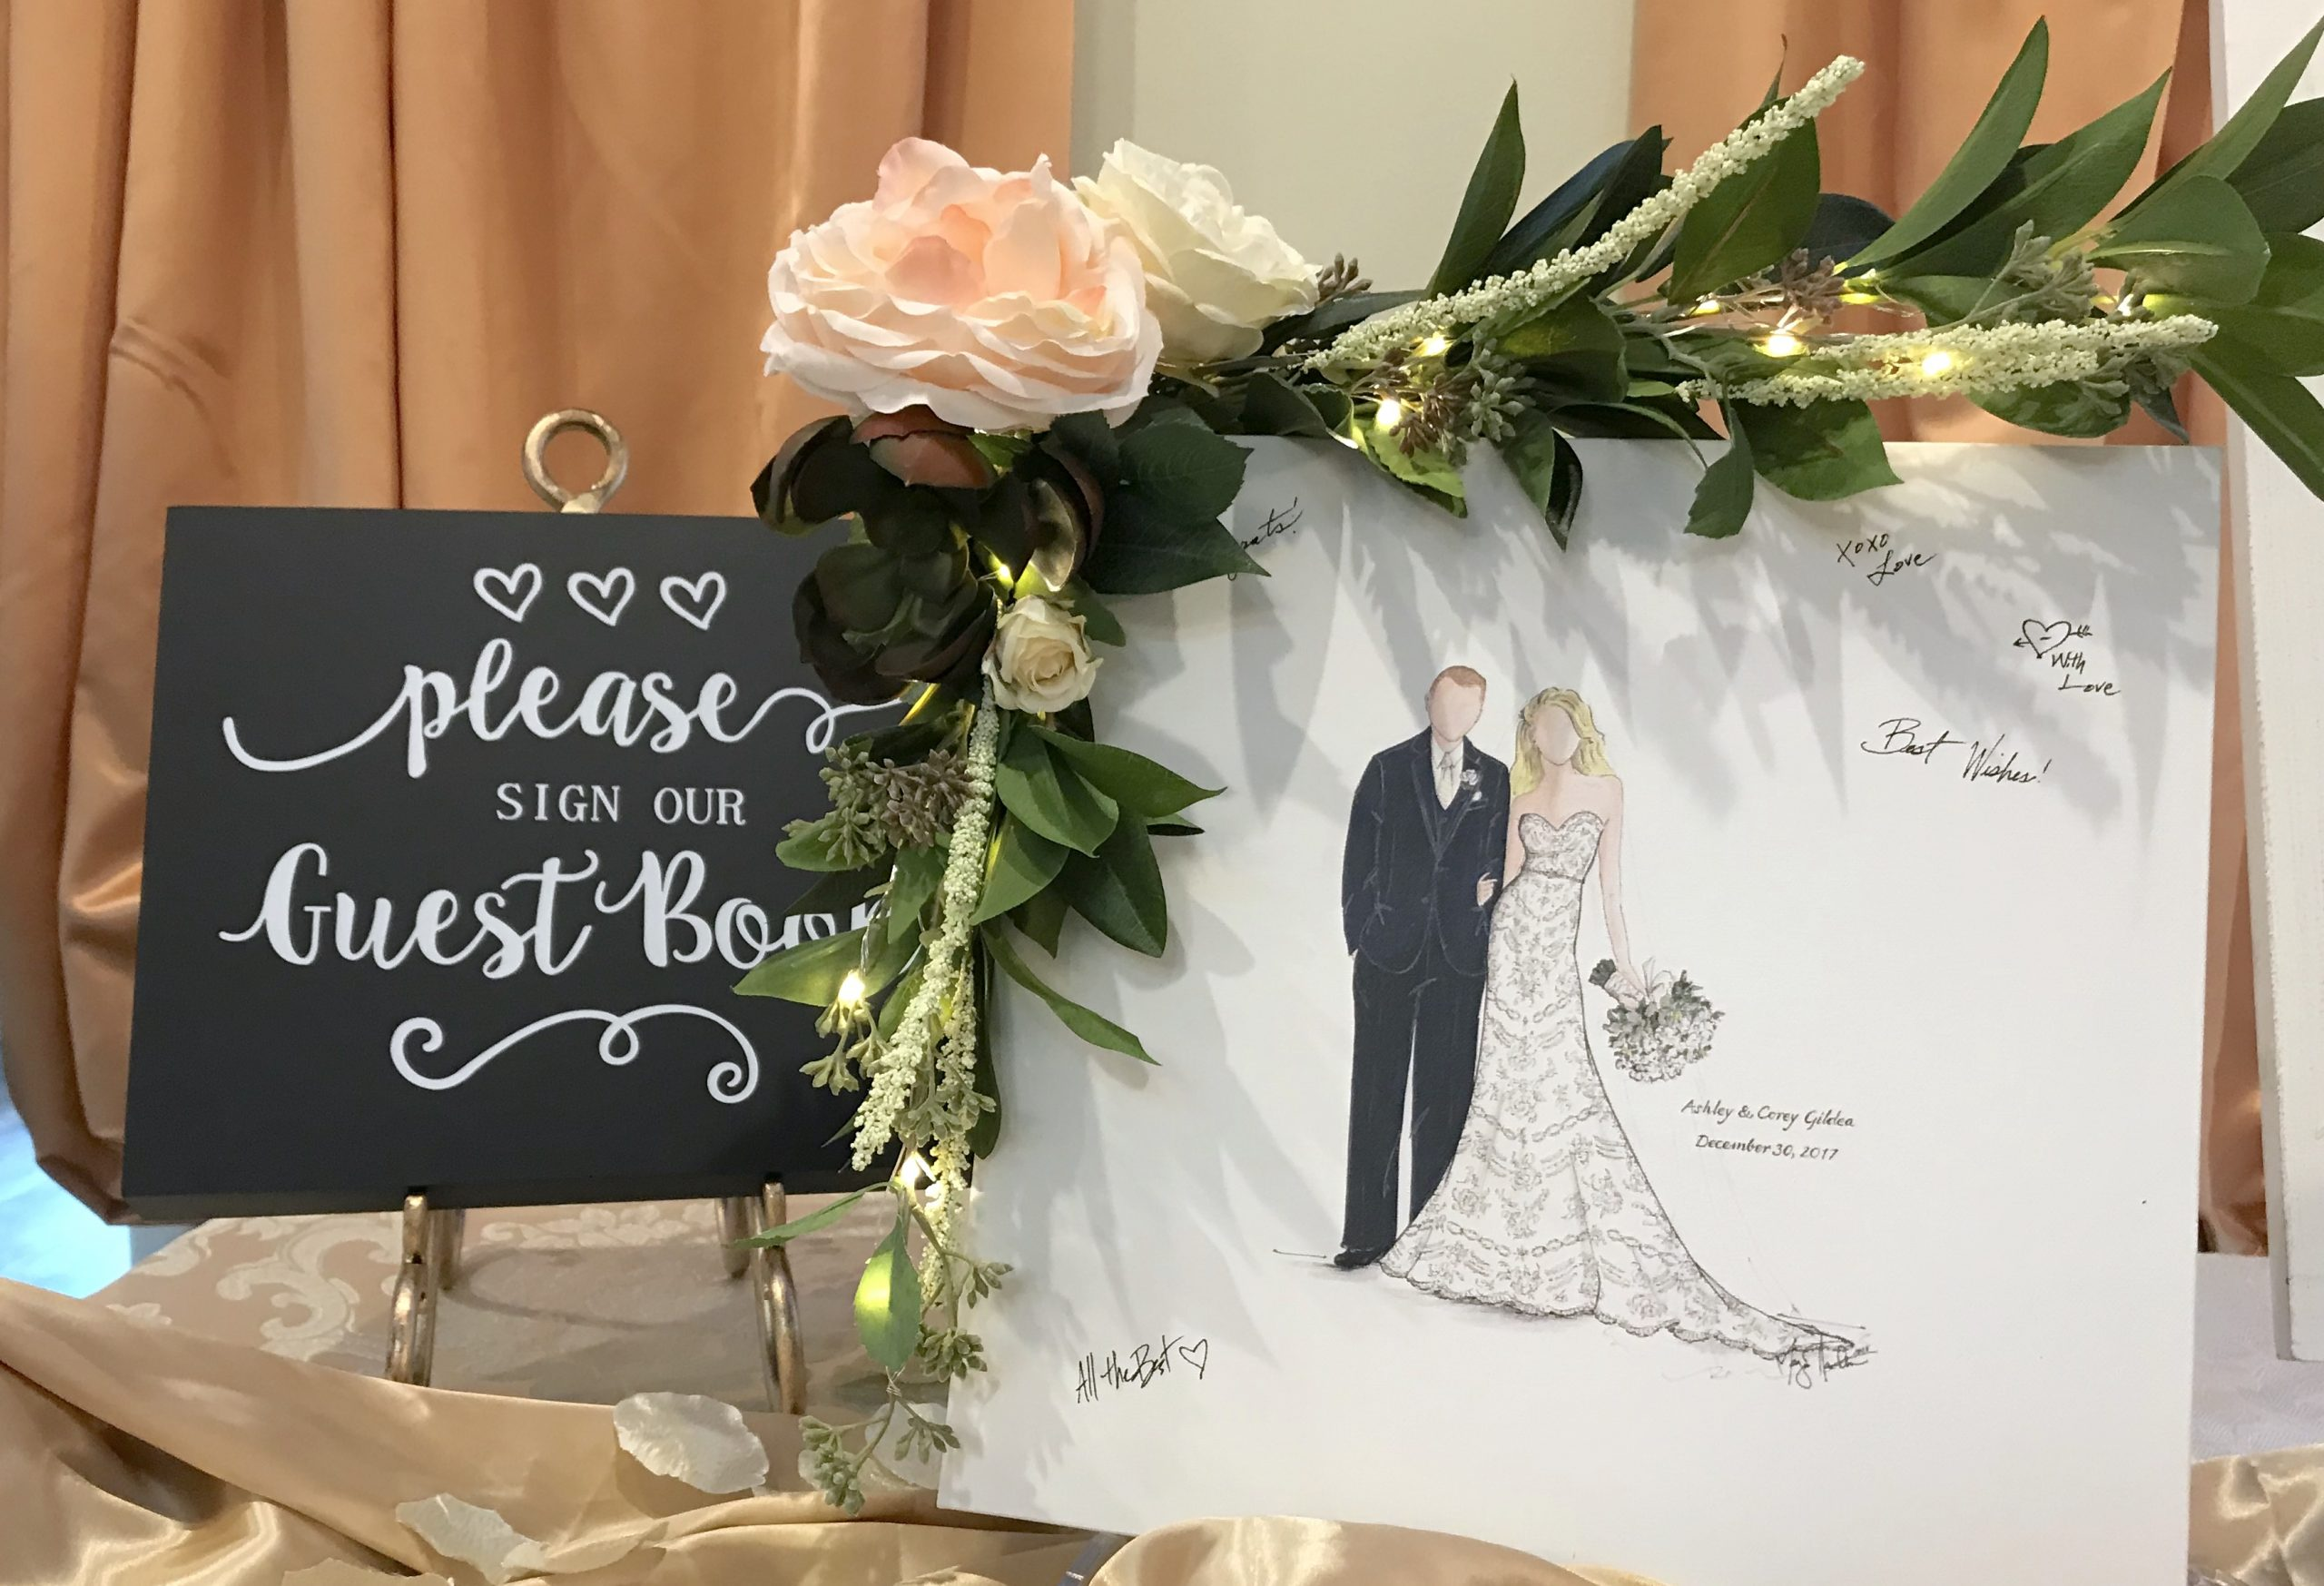 A signing board and signage to wedding guests as they enter the recption hall. Illustrated by Megan Hamilton Weddings. Featured on Dream Weddings.